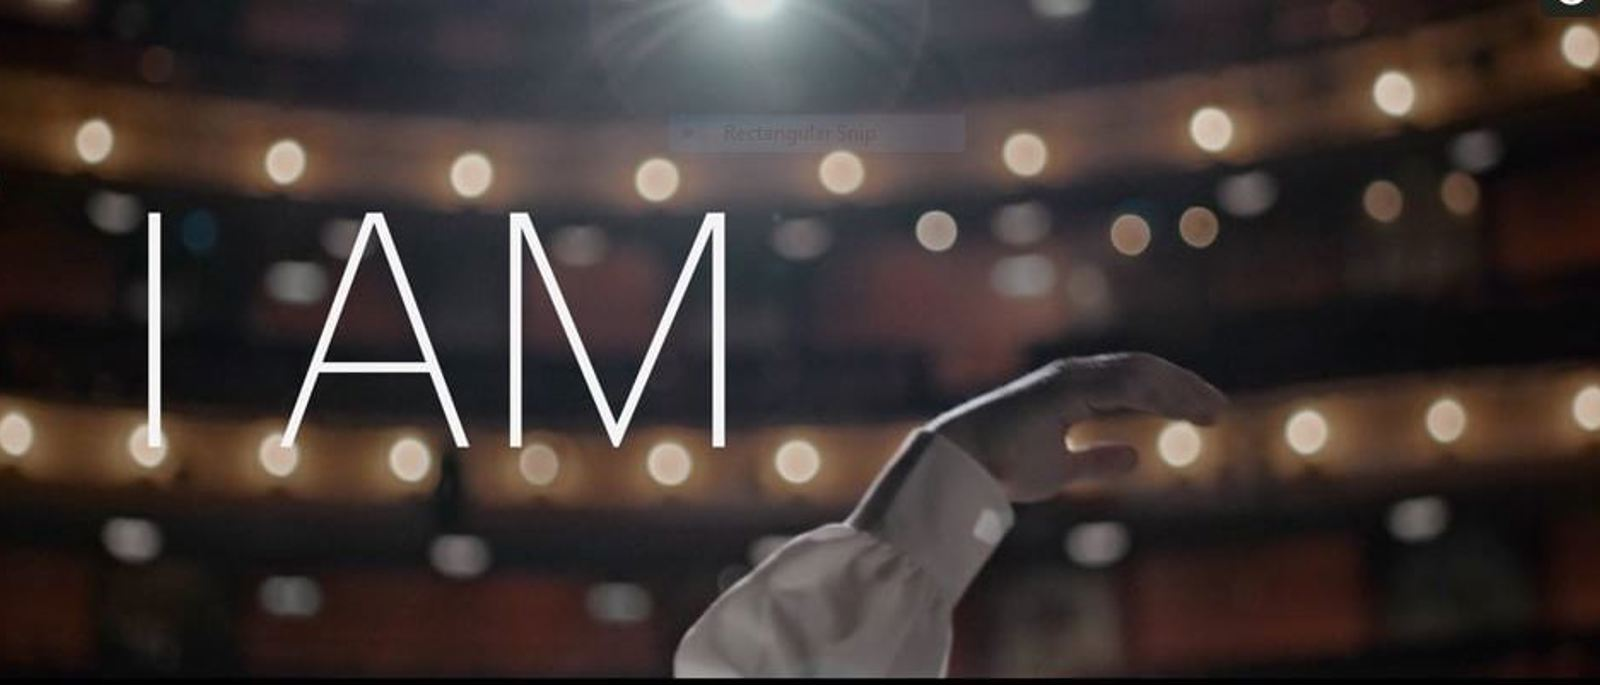 I am: a short film by Meehow Films: an exploration of the nature of ability, showcasing Orpheus students, Andrew, Awa, Steve and Sandra.